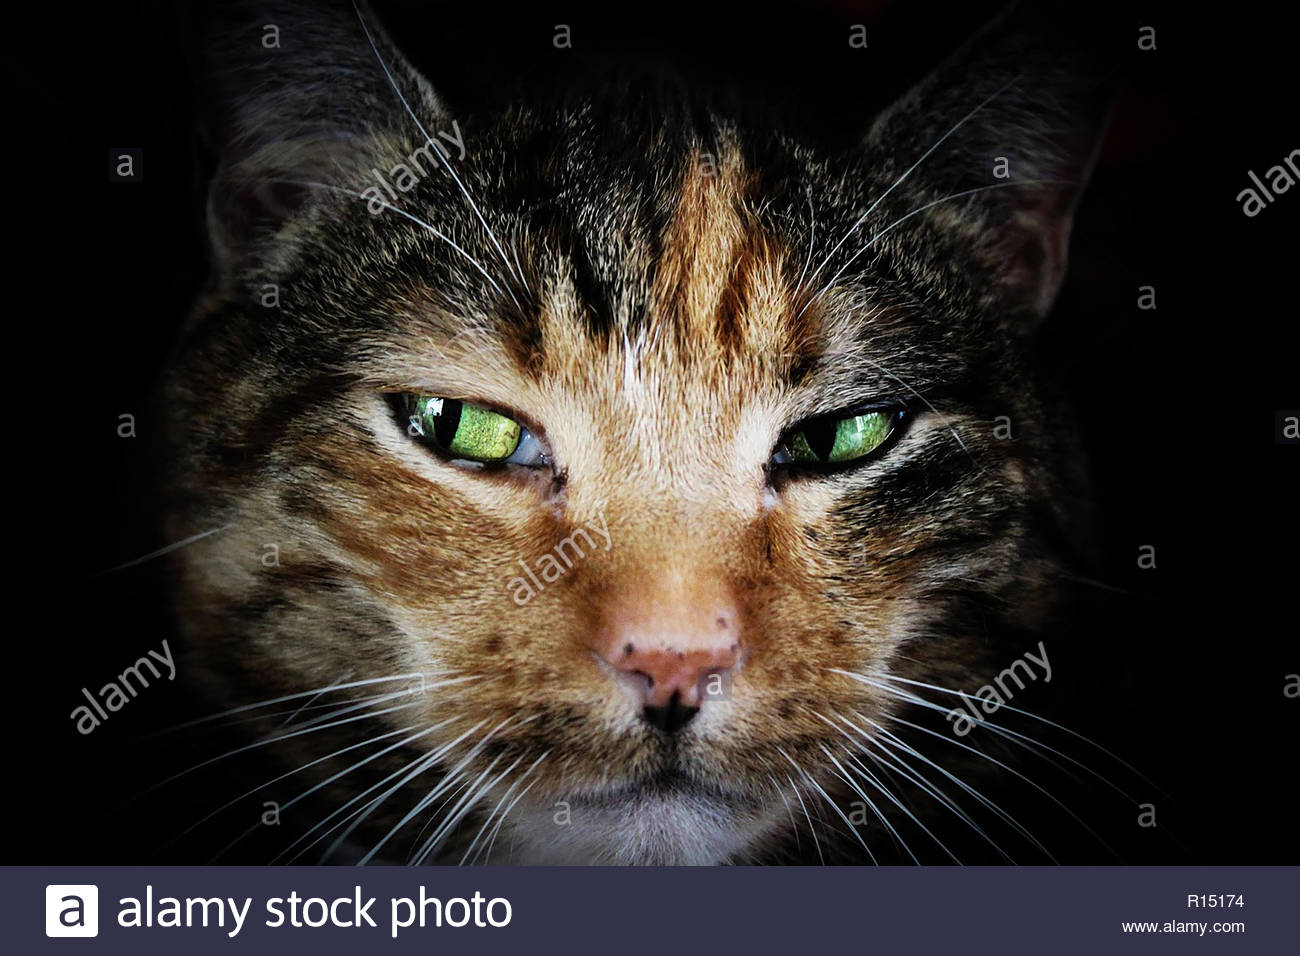 cute cat closeup - Stock Image